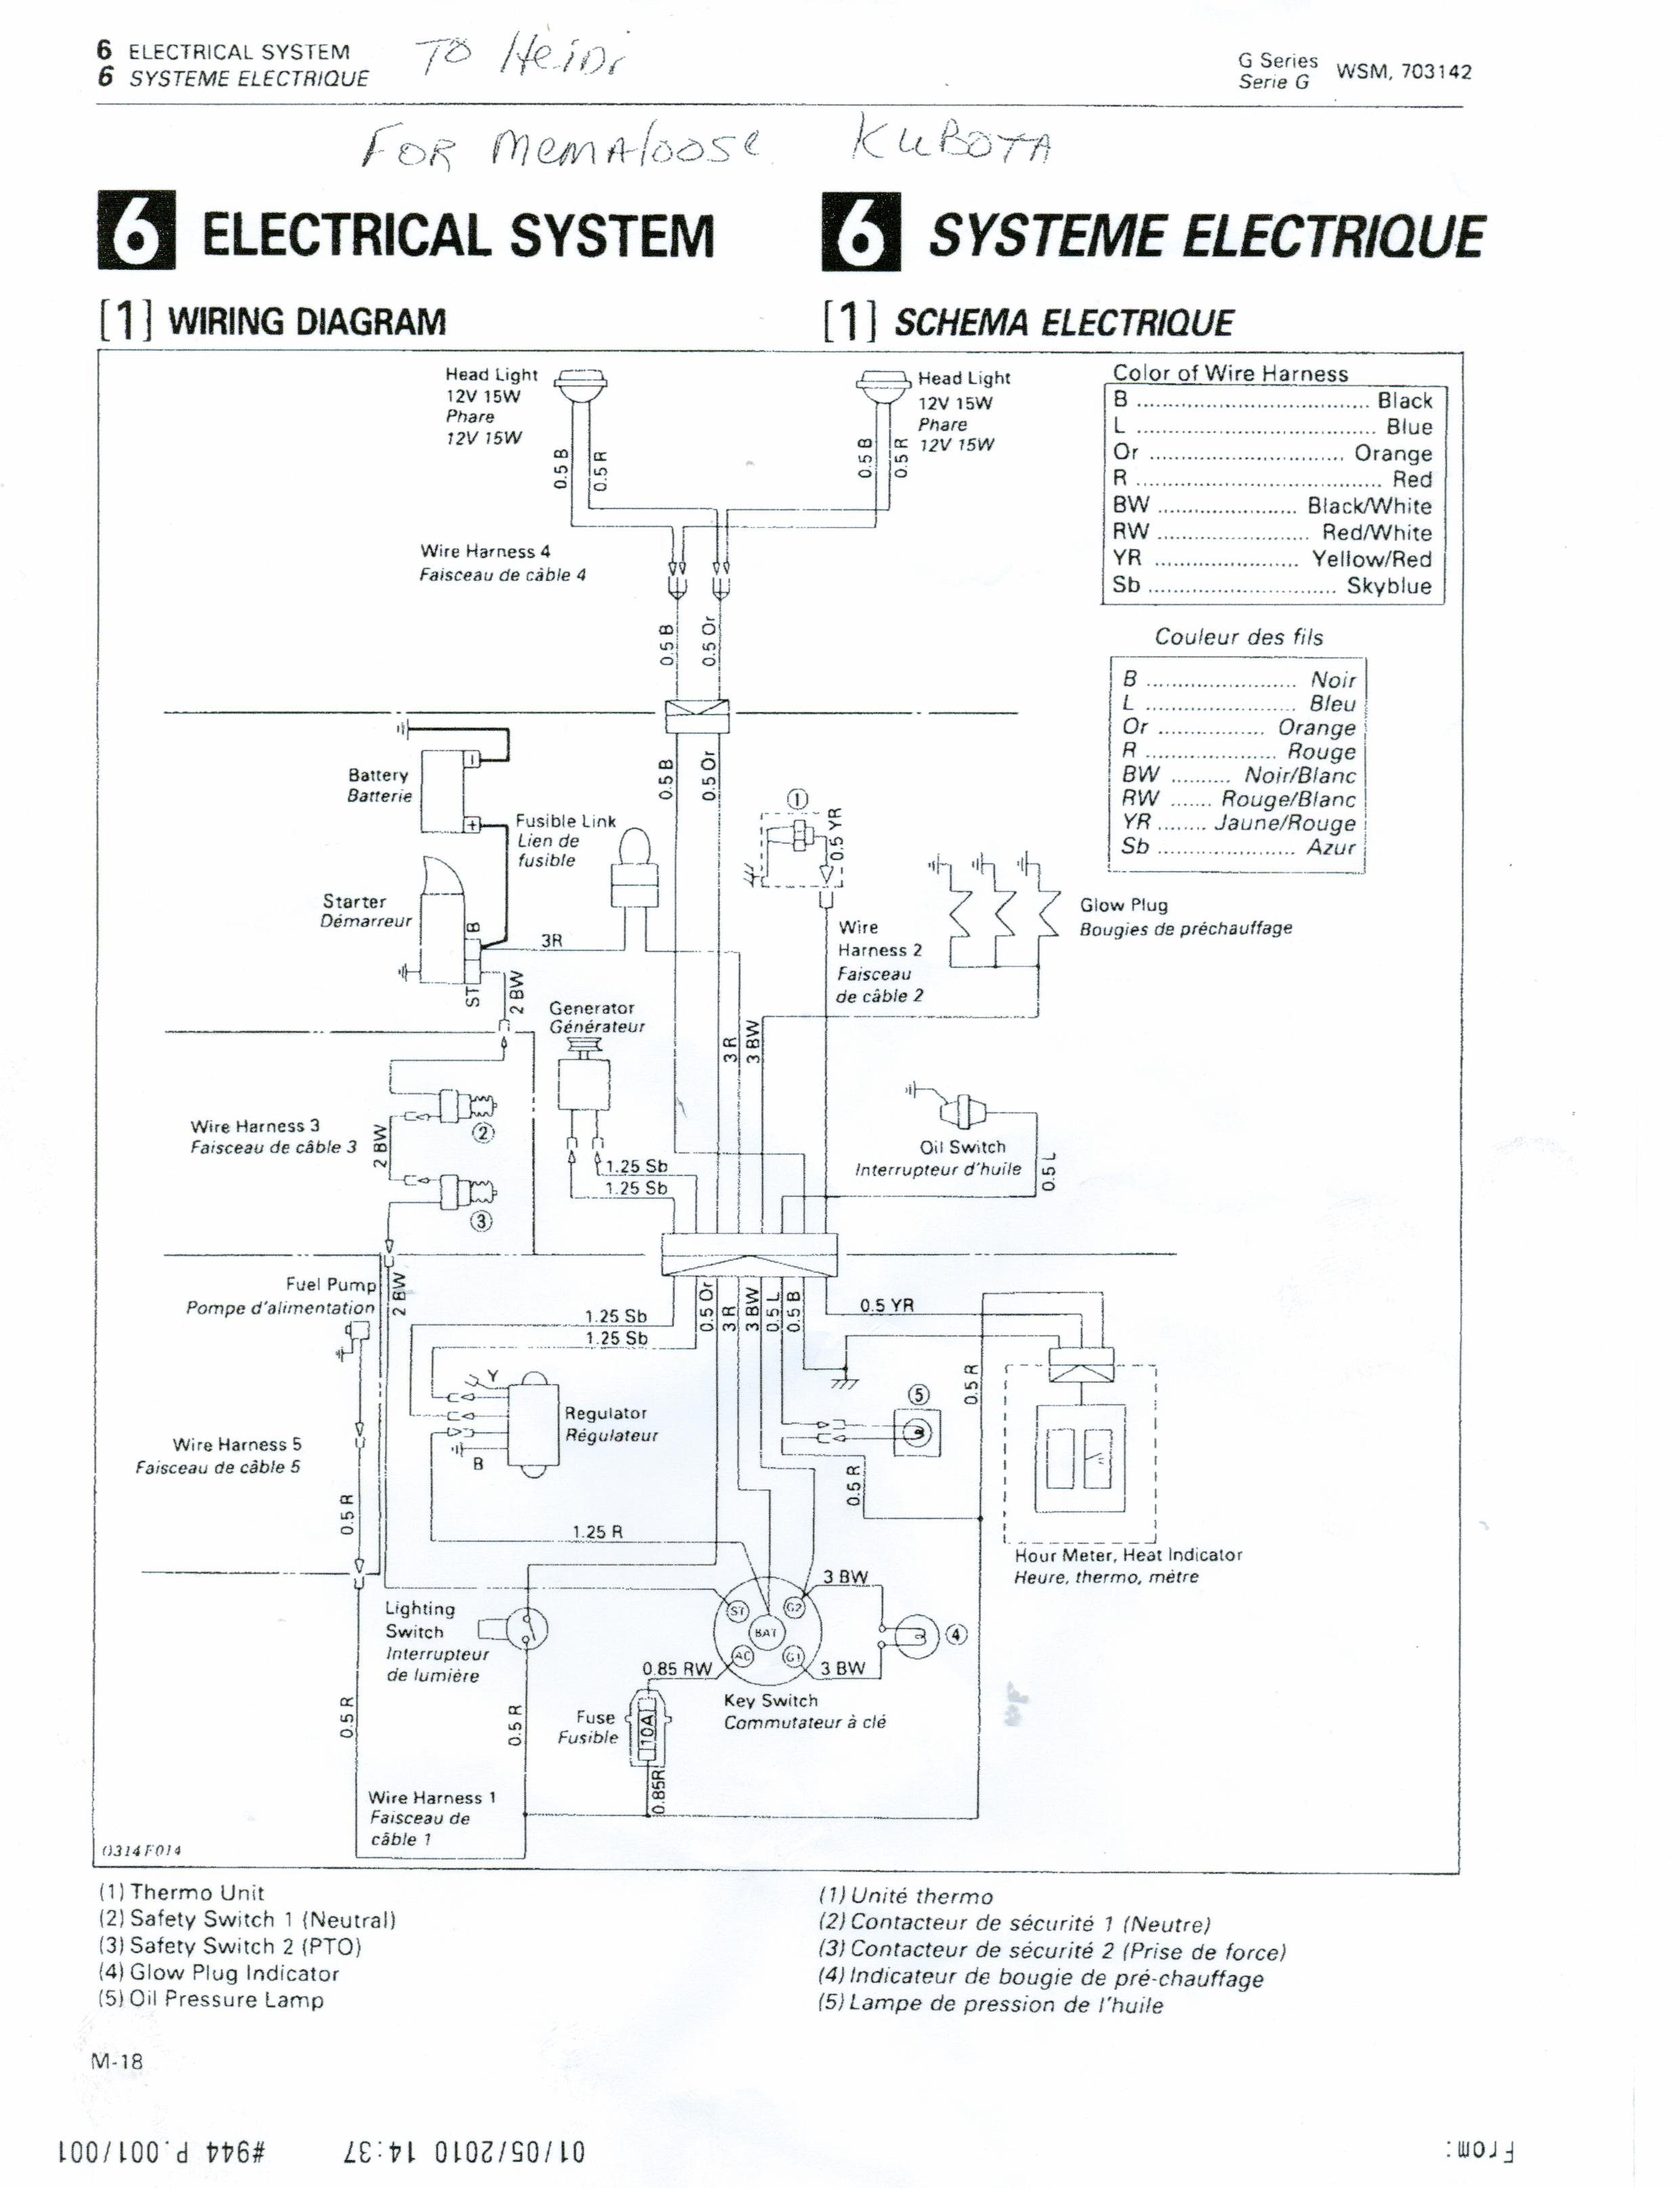 Kubota Zd331 Wiring Diagrams | Wiring Diagram on kubota bx tractor wiring diagrams, lawn mower ignition switch wiring diagram, ford 4000 tractor wiring diagram, ford 4630 tractor wiring diagram, new holland ford tractor alternator wiring diagram, kubota tractor bx2200 parts diagram, ford tractor 3-point hitch diagram, ford tractor starter wiring diagram, b7000 kubota tractor wiring diagram,